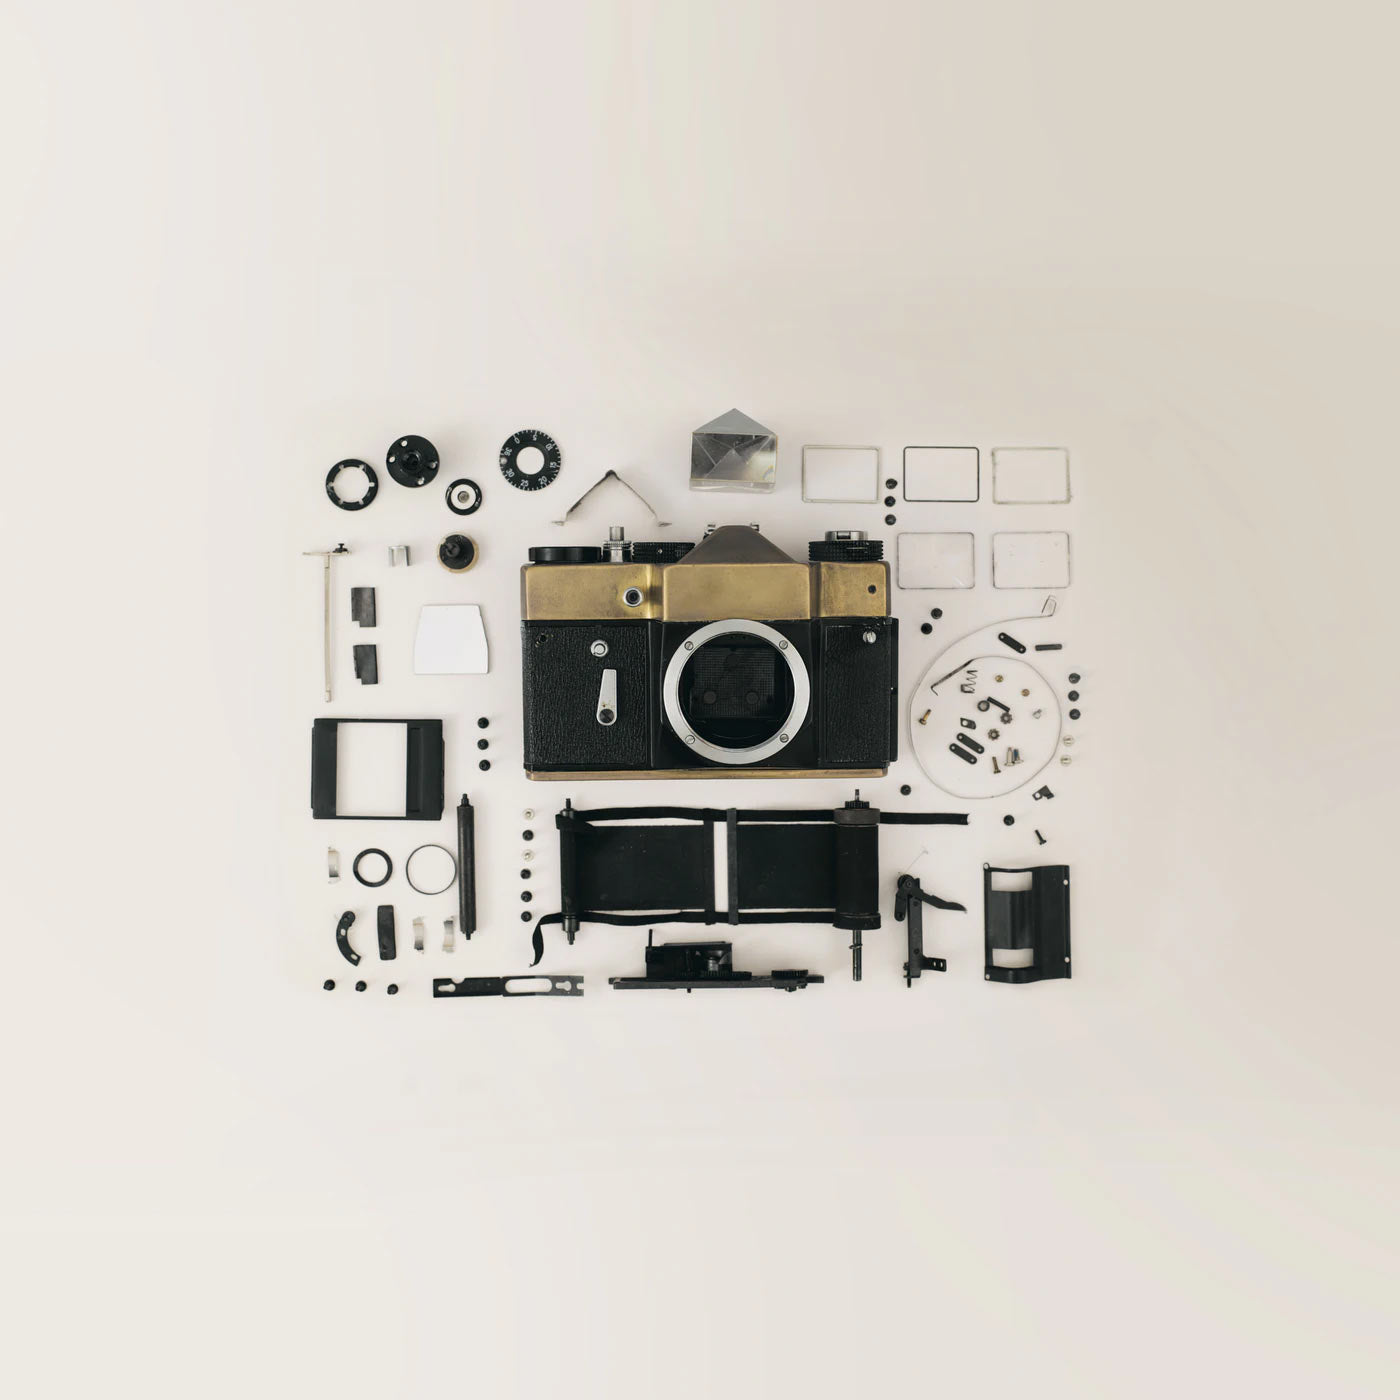 Camera separated into parts